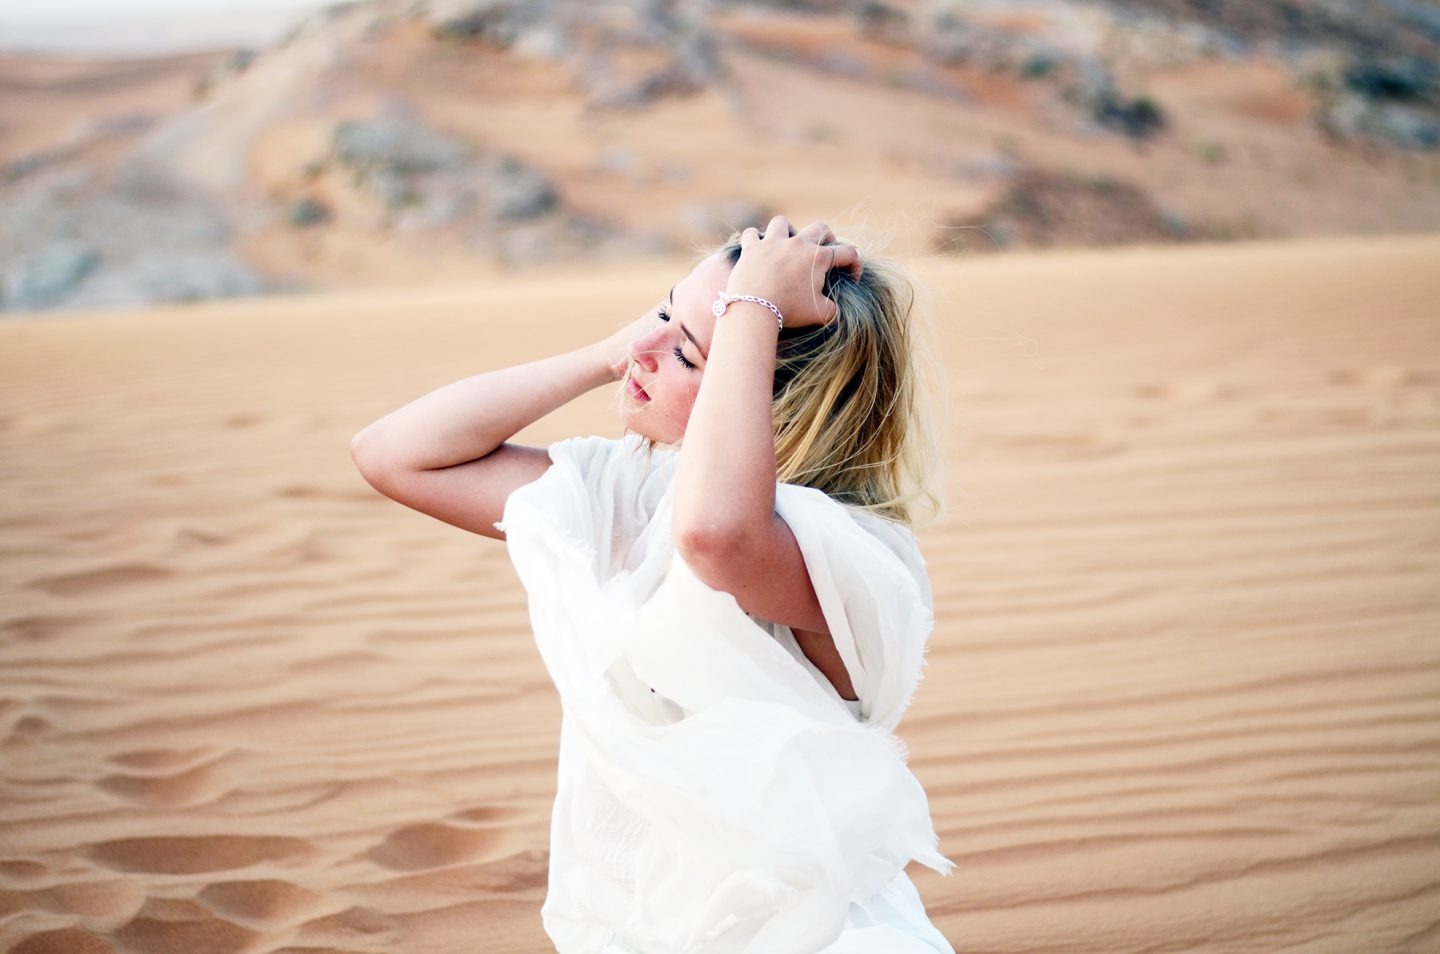 Charm Club: Thomas Sabo in Dubai Desert